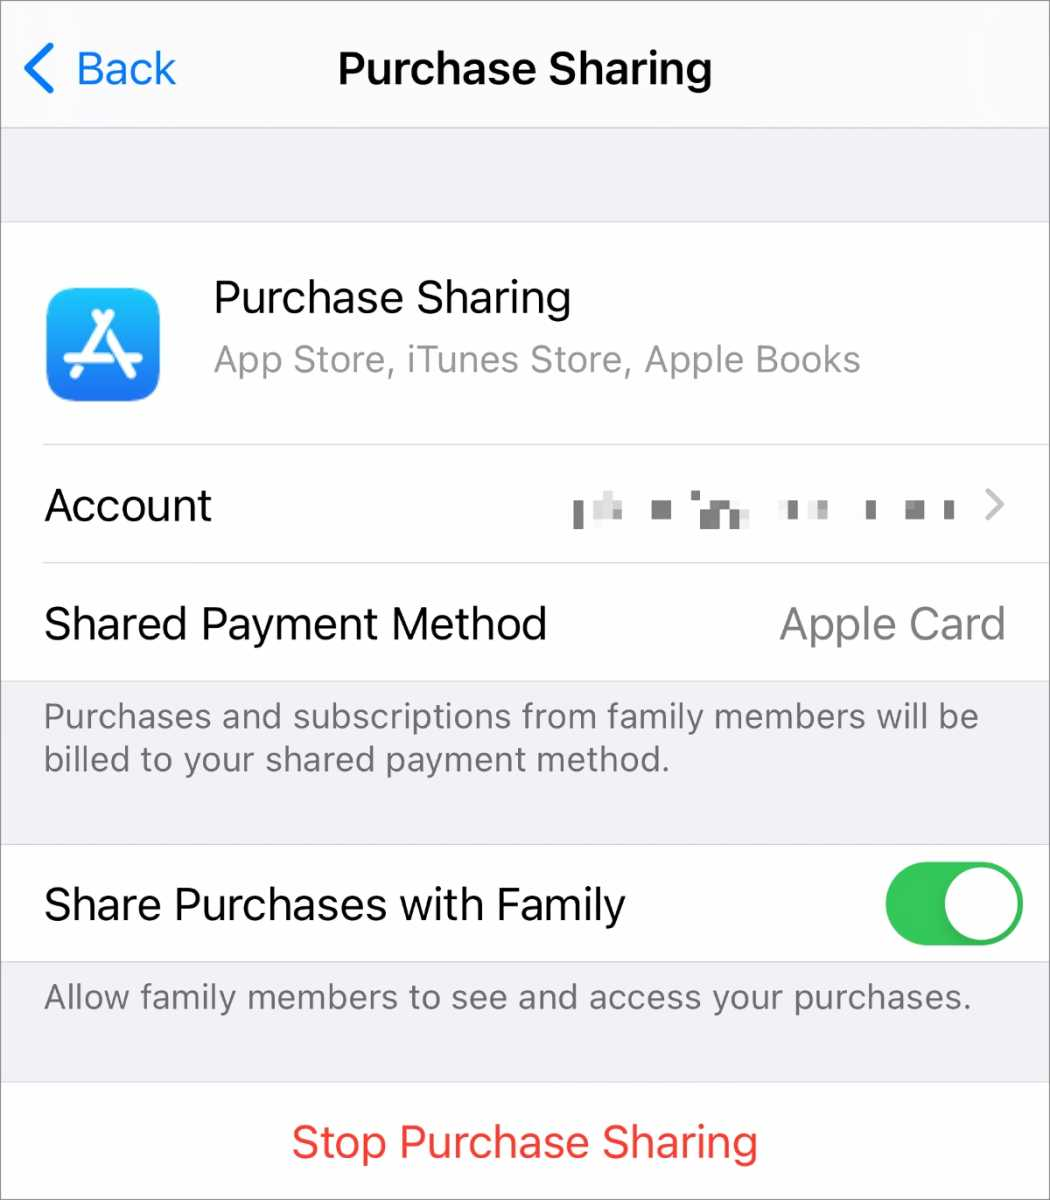 iOS Purchase Sharing